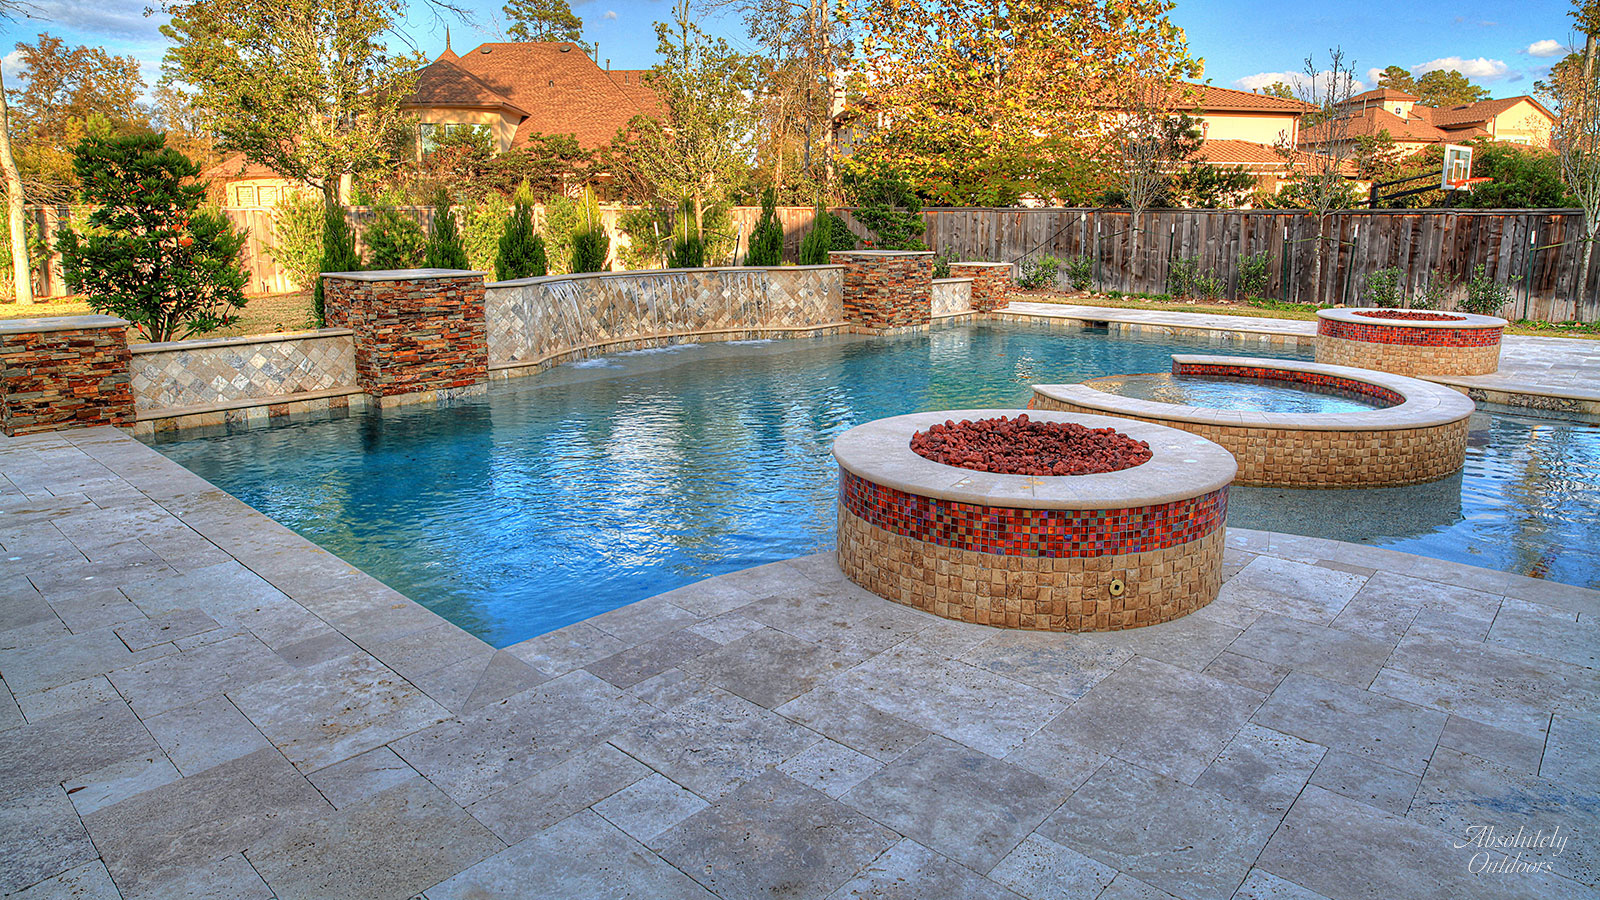 5 Simple Ways to Update Your Backyard This Weekend, Absolutely Outdoors, Tomball, TX